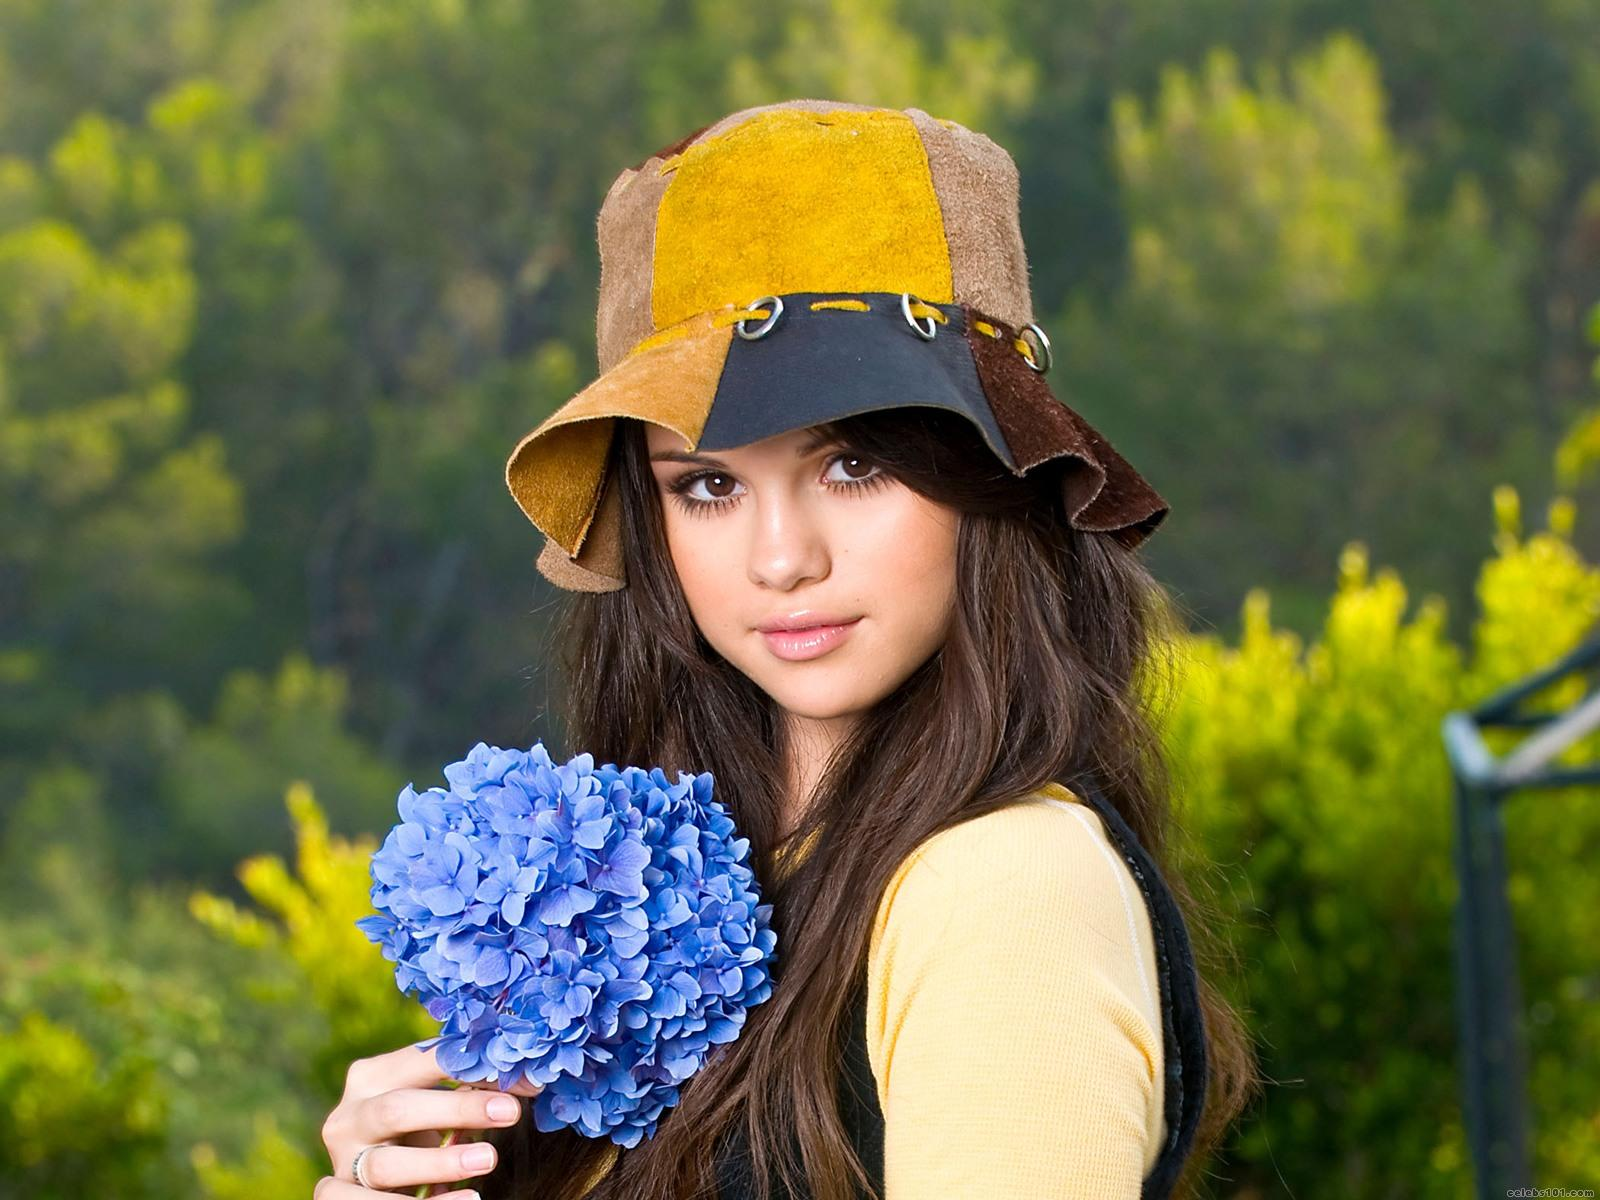 http://2.bp.blogspot.com/-WkQlTlTdWwE/TvcRGRKBKPI/AAAAAAAAOoc/ZPQVvlWa_s4/s1600/The-best-top-desktop-selena-gomez-wallpapers-selena-gomez-wallpaper-hd-23.jpg